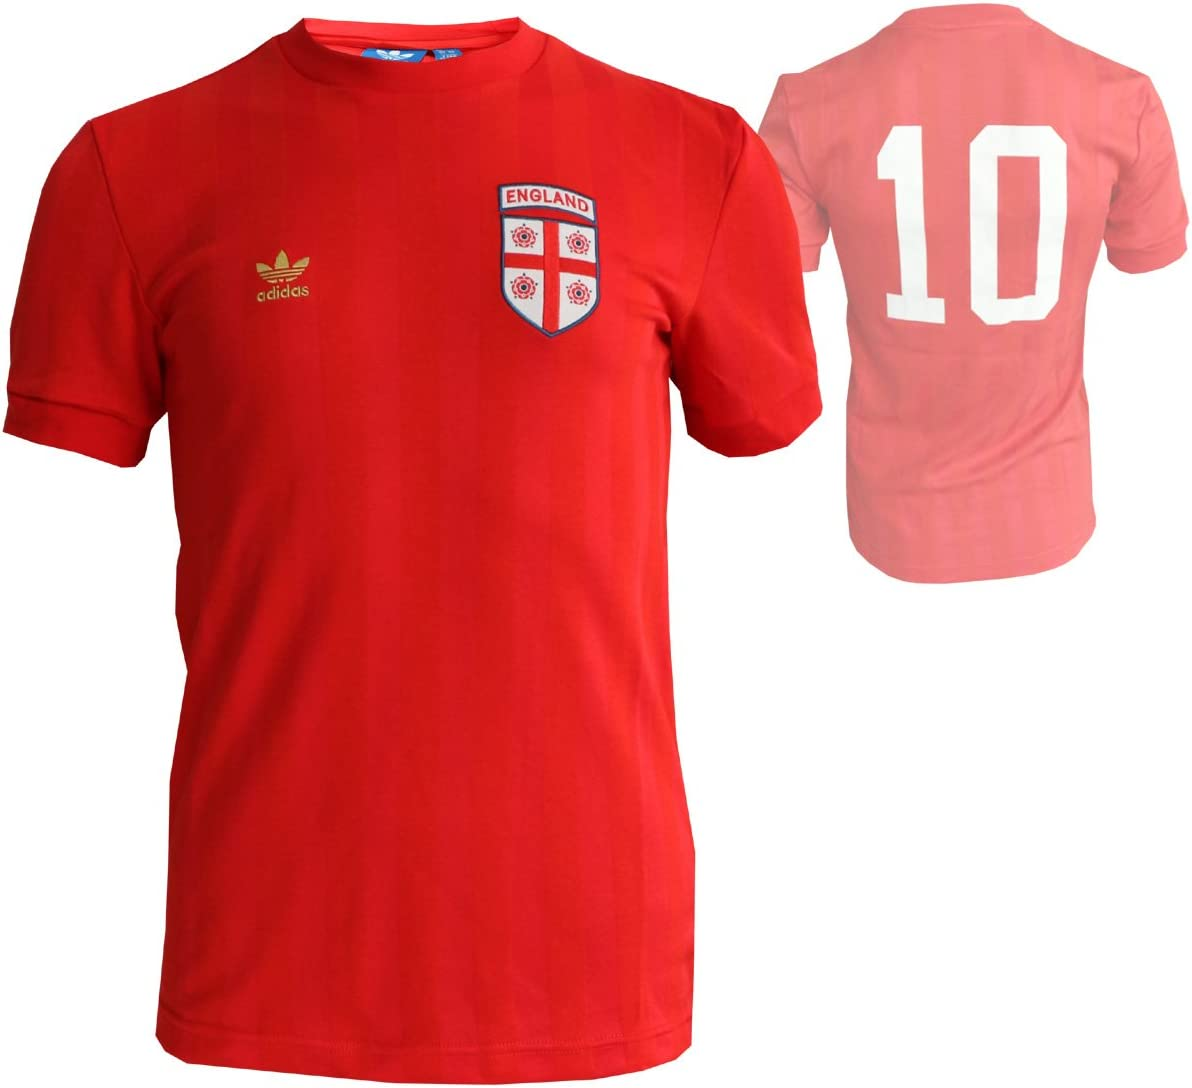 colisión tono Izar  adidas England Originals Tee Fan T-Shirt Red World Cup Fan Item National  Team RU, Size: XS: Amazon.co.uk: Clothing